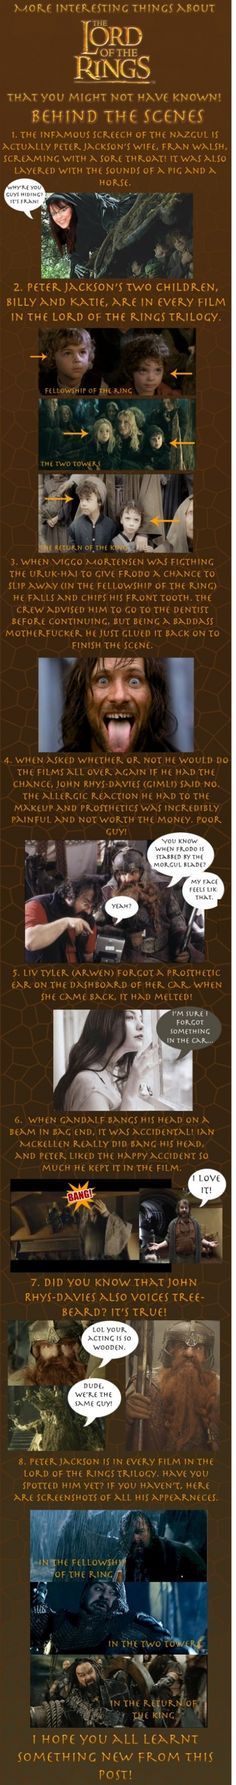 LotR Behind the Scenes Facts